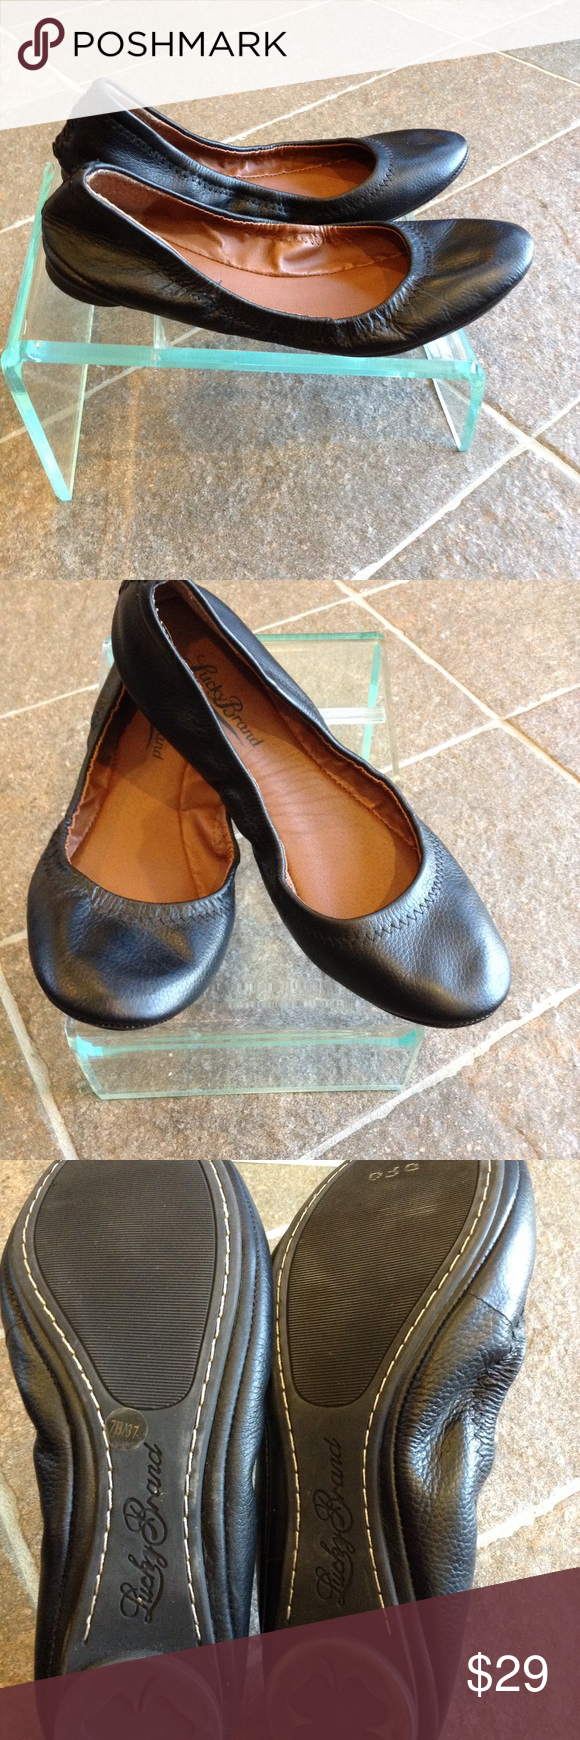 dd94ce37d Lucky Brand black flats size 7 Very good condition Lucky Brand Shoes Flats  & Loafers